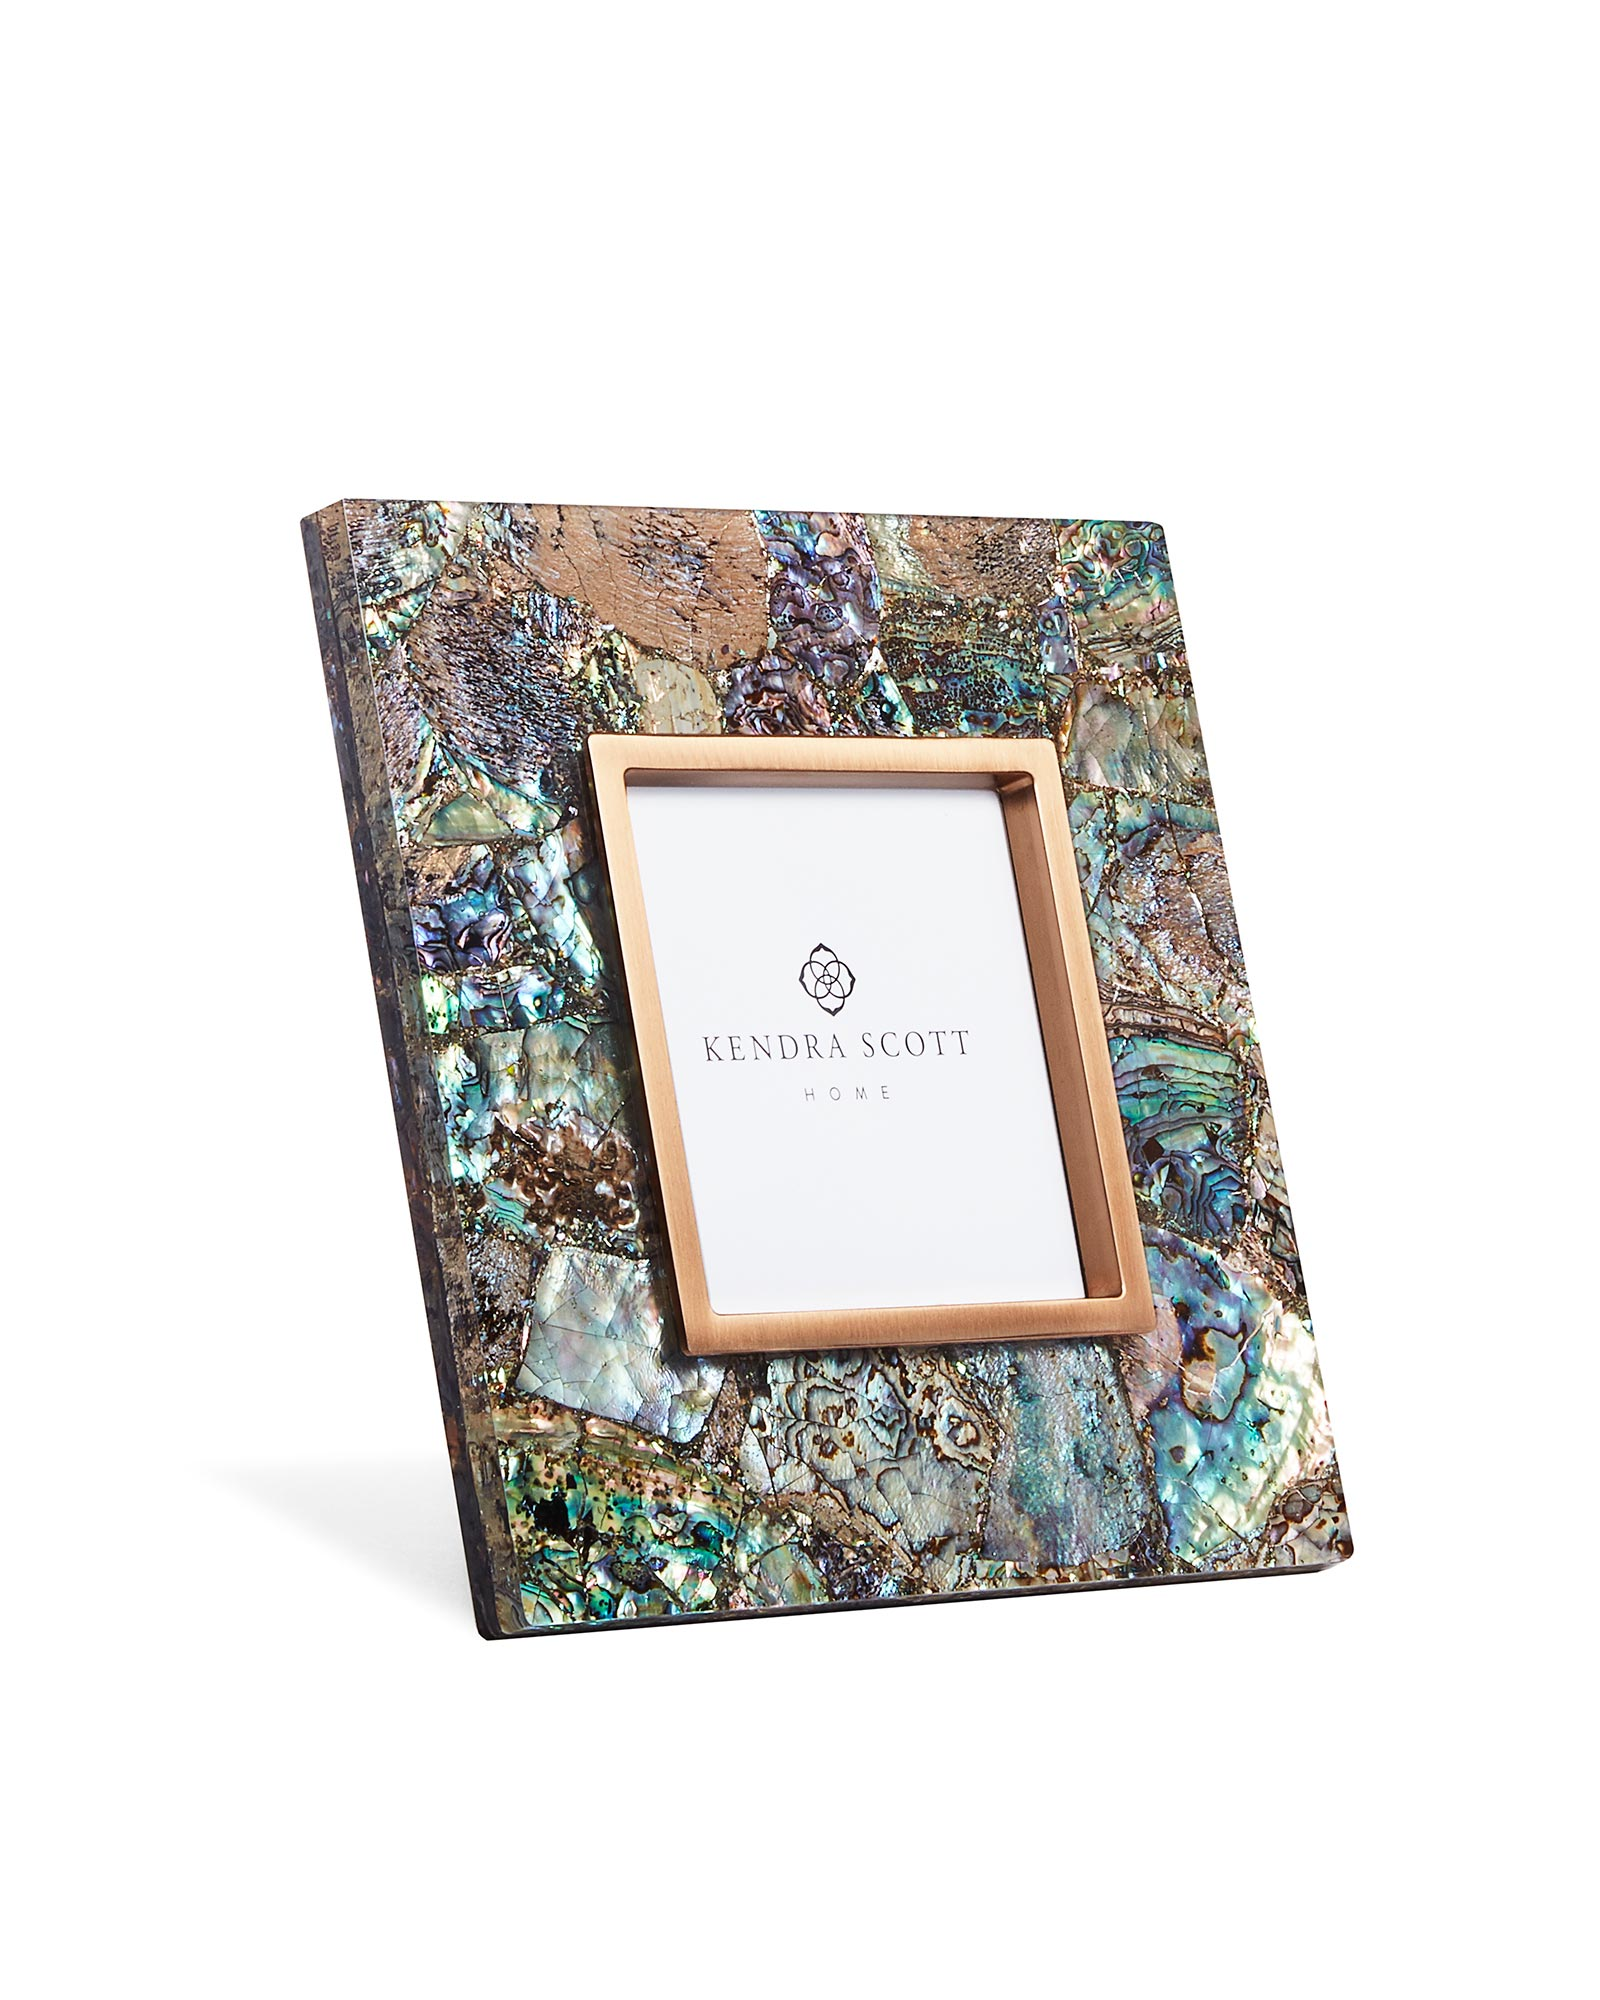 Kendra Scott picture frame, a stylish home upgrade.